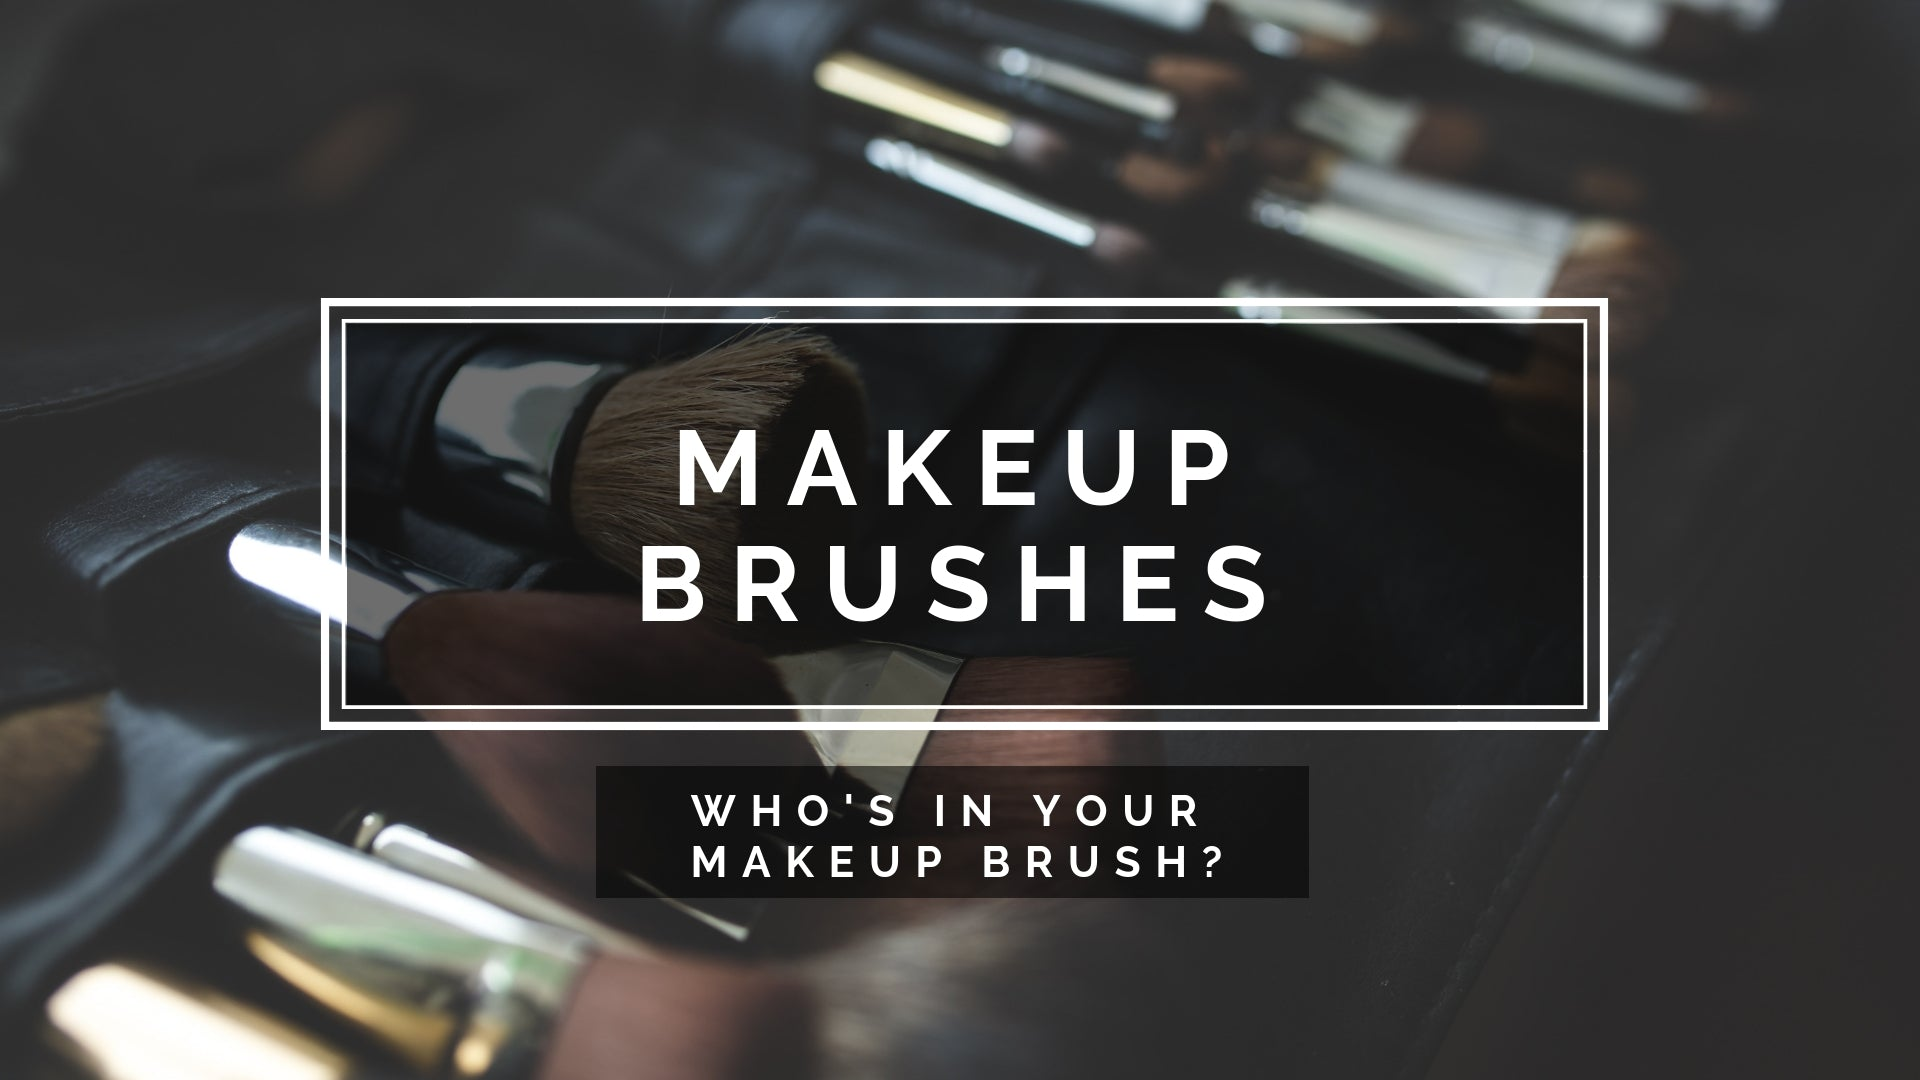 Makeup Brushes - Who's in your makeup brush?